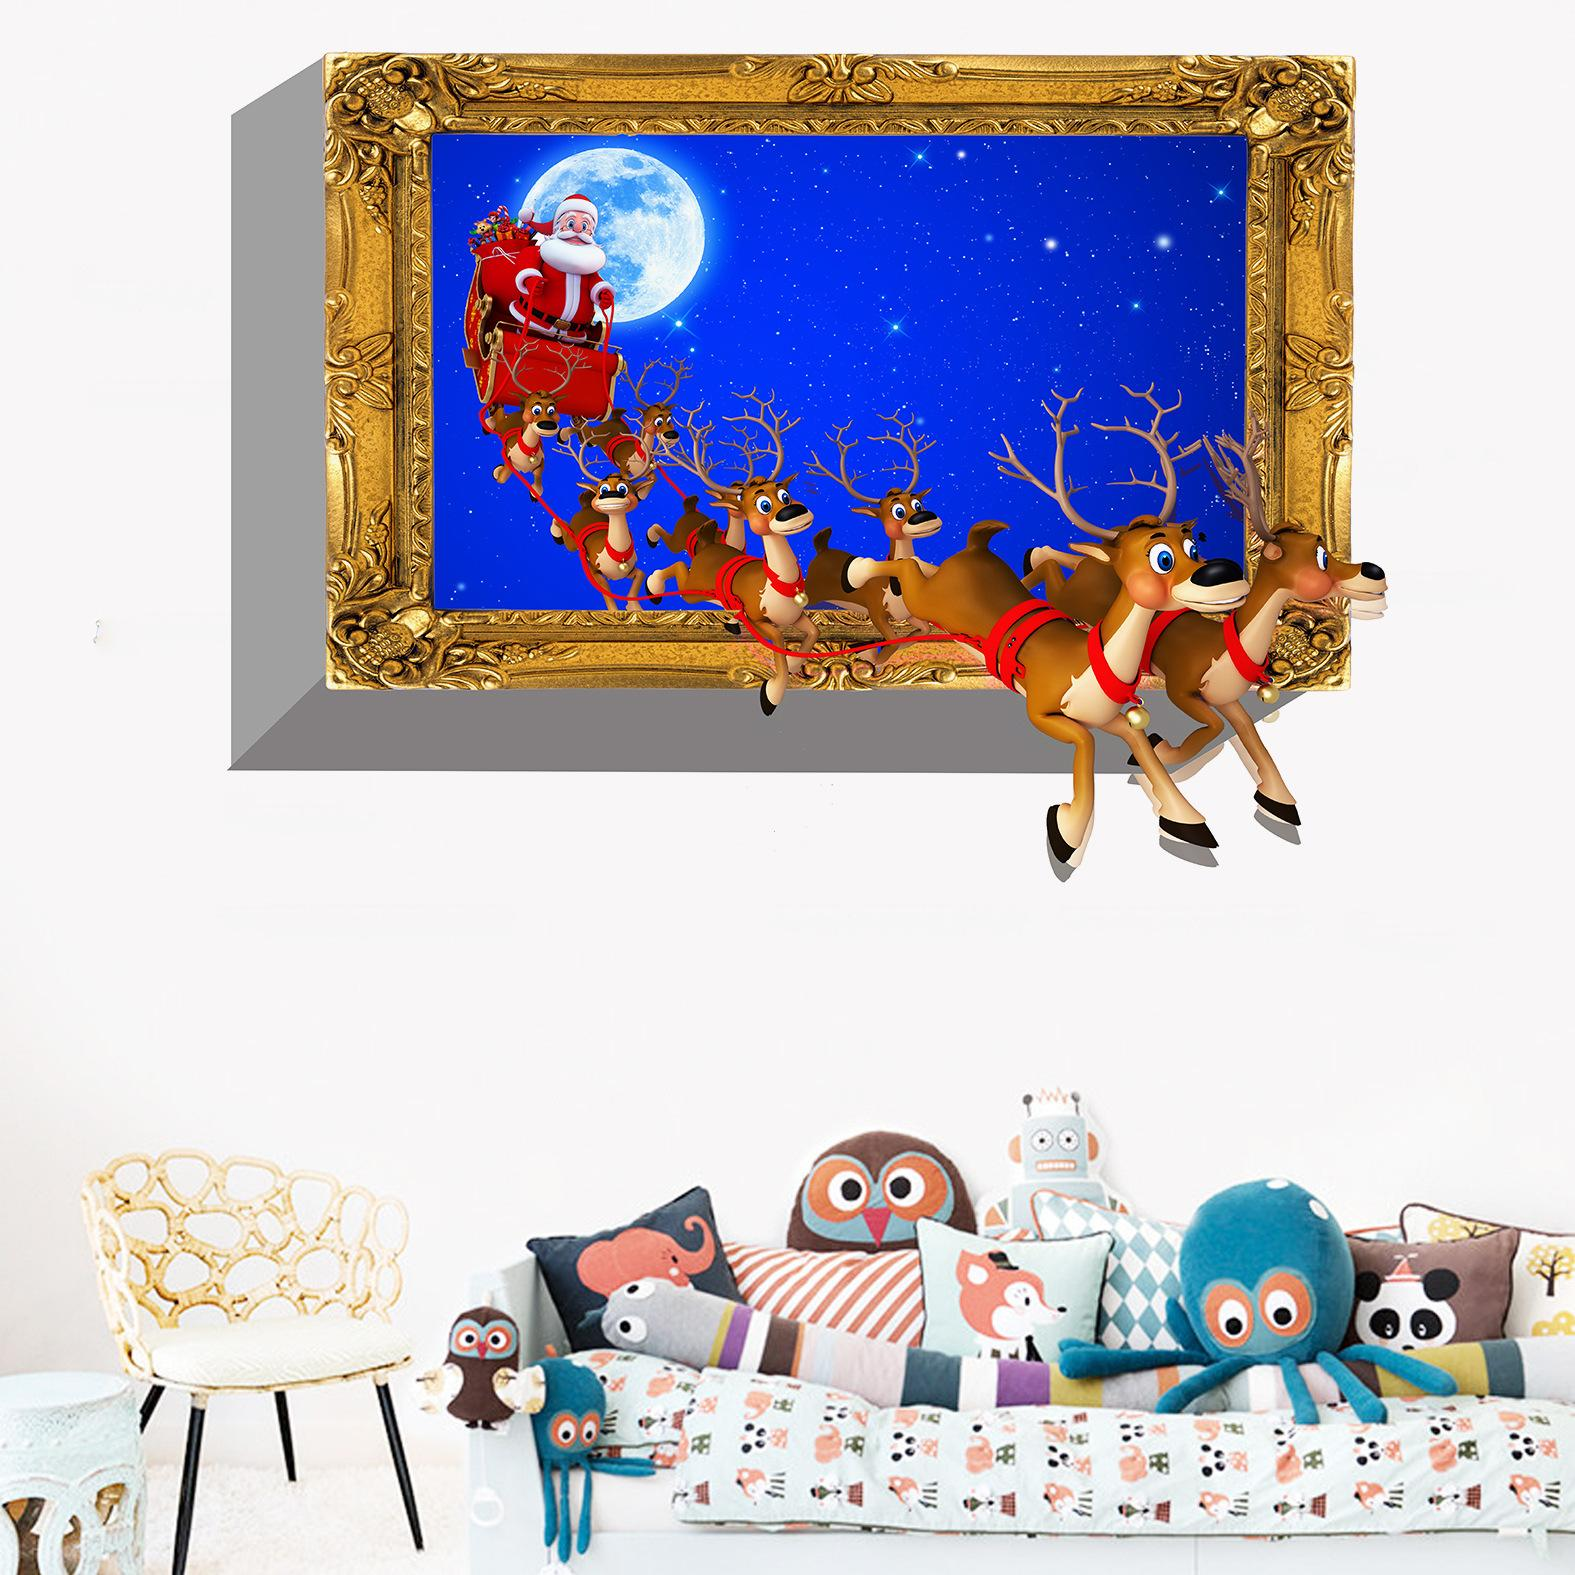 New Chirstmas Wall Decals Removable PVC Santa Elk Flying Festival Wall Sticker Murals for Living Room and Kids Room Decoration